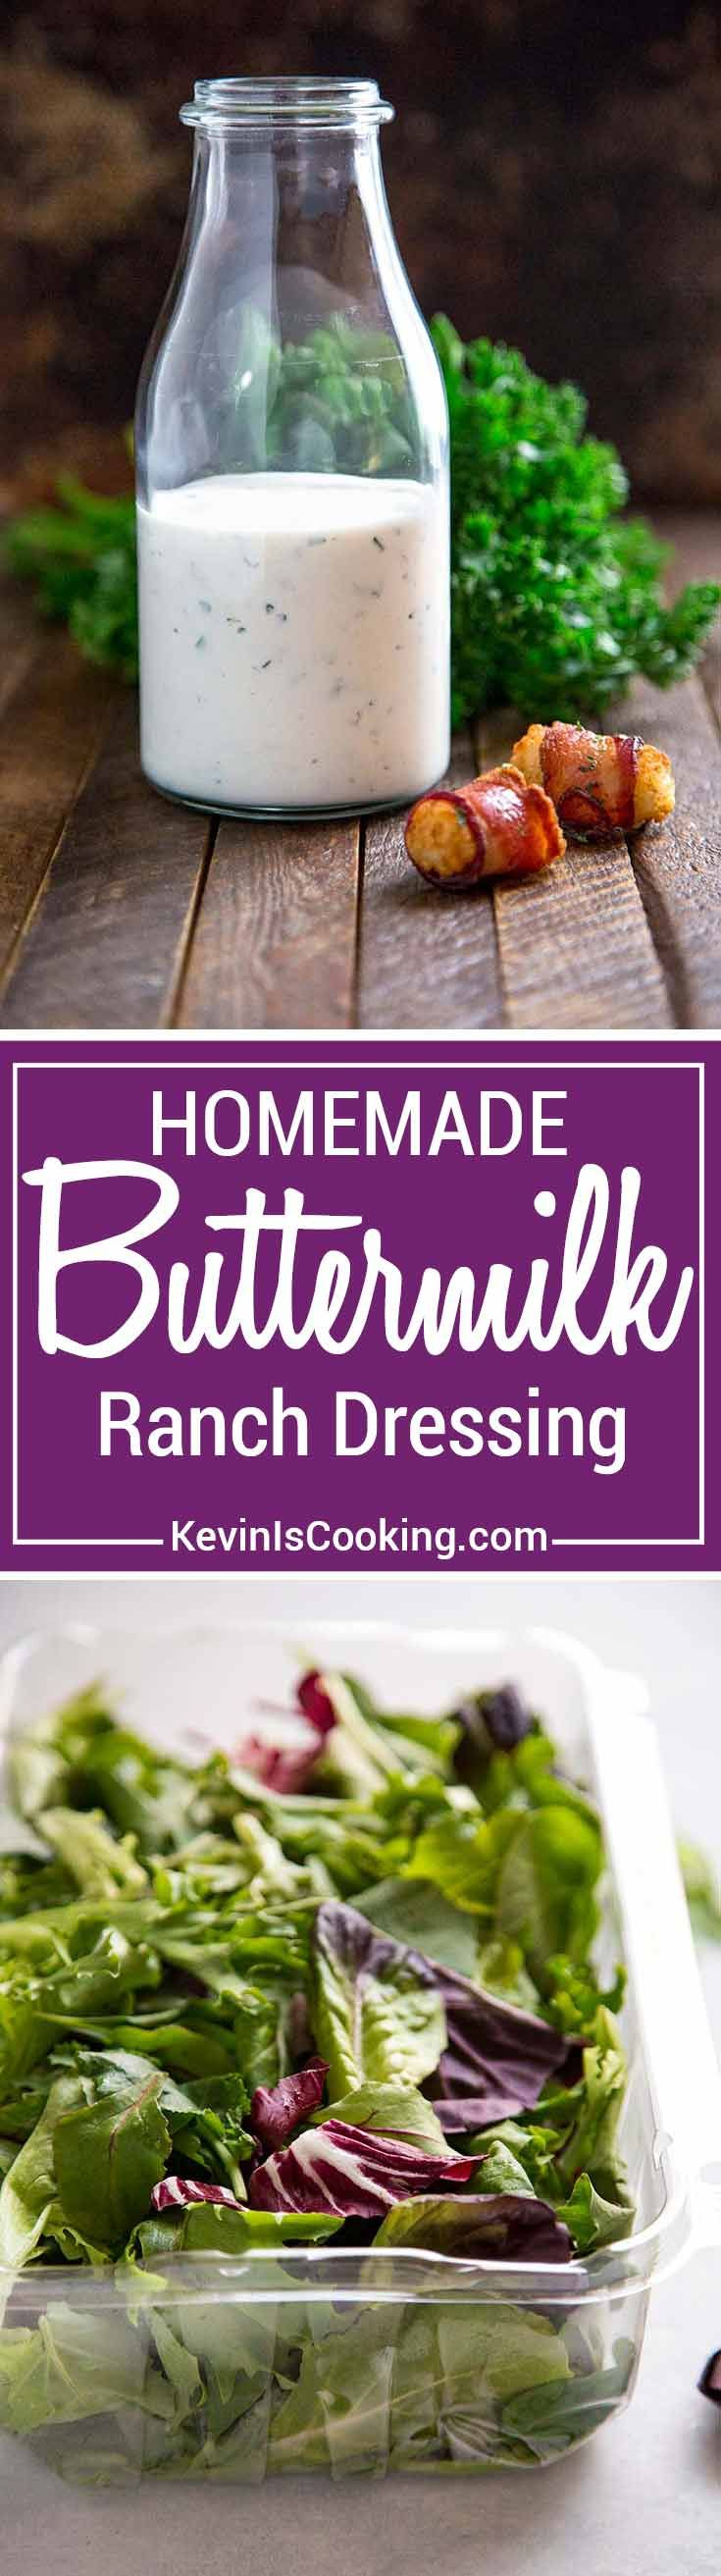 Homemade Buttermilk Ranch Dressing A Thick And Creamy Salad Dressing Made With Buttermilk Yogurt Condiment Recipes Homemade Buttermilk Creamy Salad Dressing